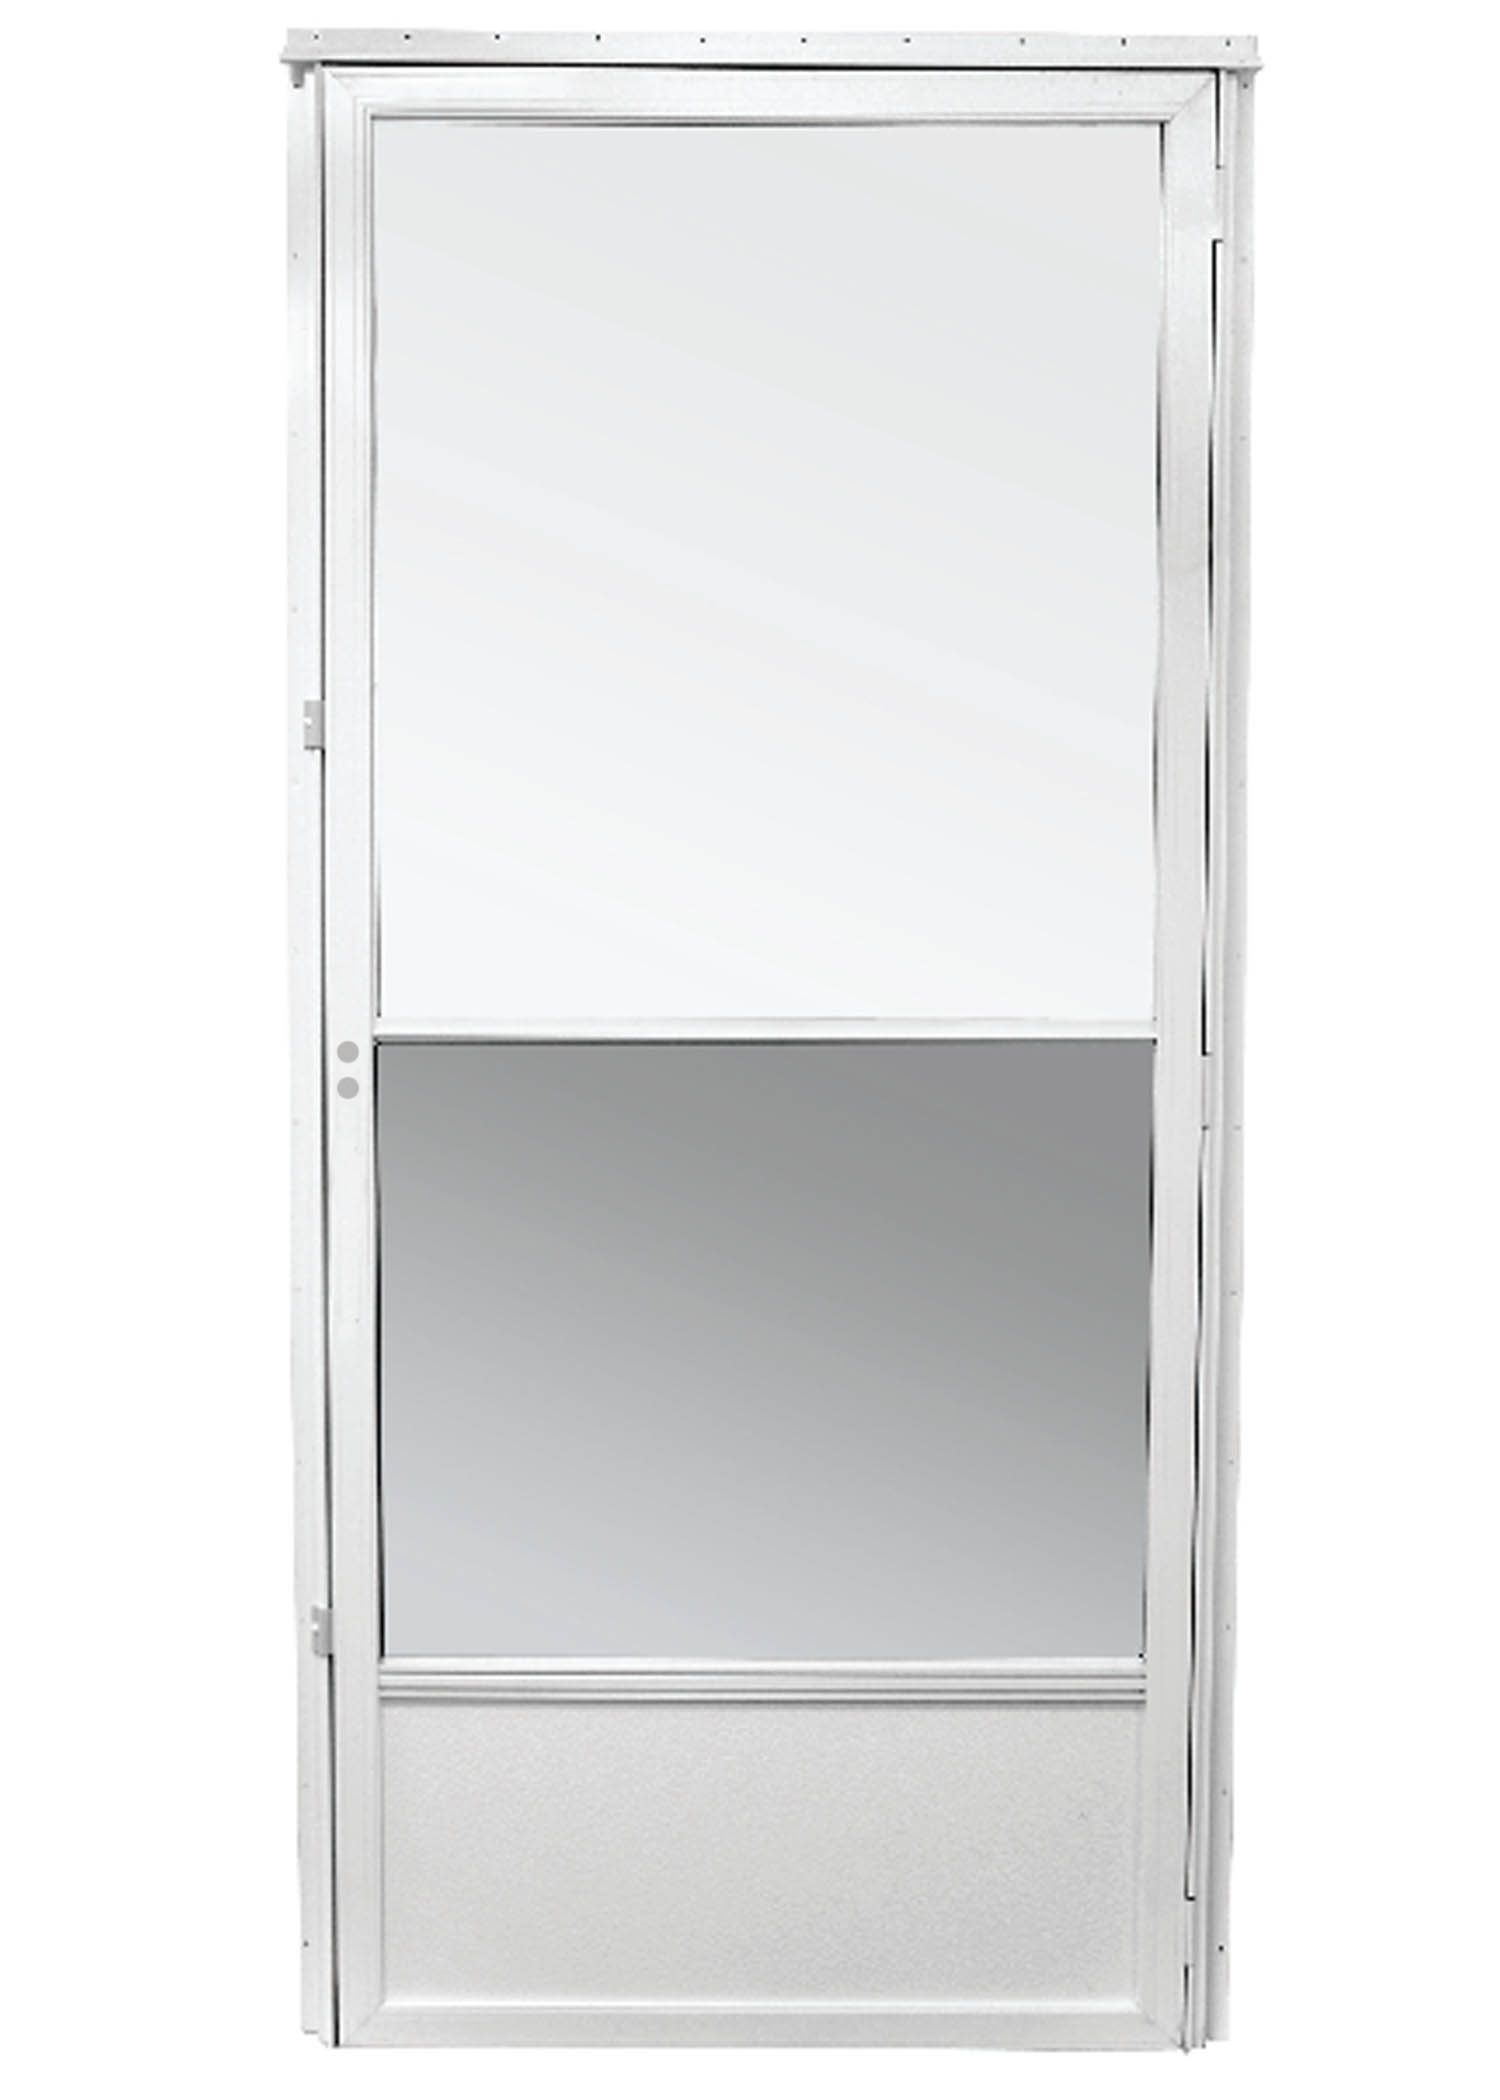 Buy Online Self Store Storm Doors - American Mobile Home Supply on hvac for mobile home, awning for mobile home, radiant barrier for mobile home, ceiling fan for mobile home, patio for mobile home, attic fan for mobile home, gas water heater for mobile home, fireplace for mobile home, bathroom for mobile home, paint for mobile home, fence for mobile home, replacement windows for mobile home, skylight for mobile home, kitchen for mobile home, hardwood floors for mobile home, sidewalk for mobile home, new windows for mobile home, screen for mobile home, swamp cooler for mobile home, pantry for mobile home,